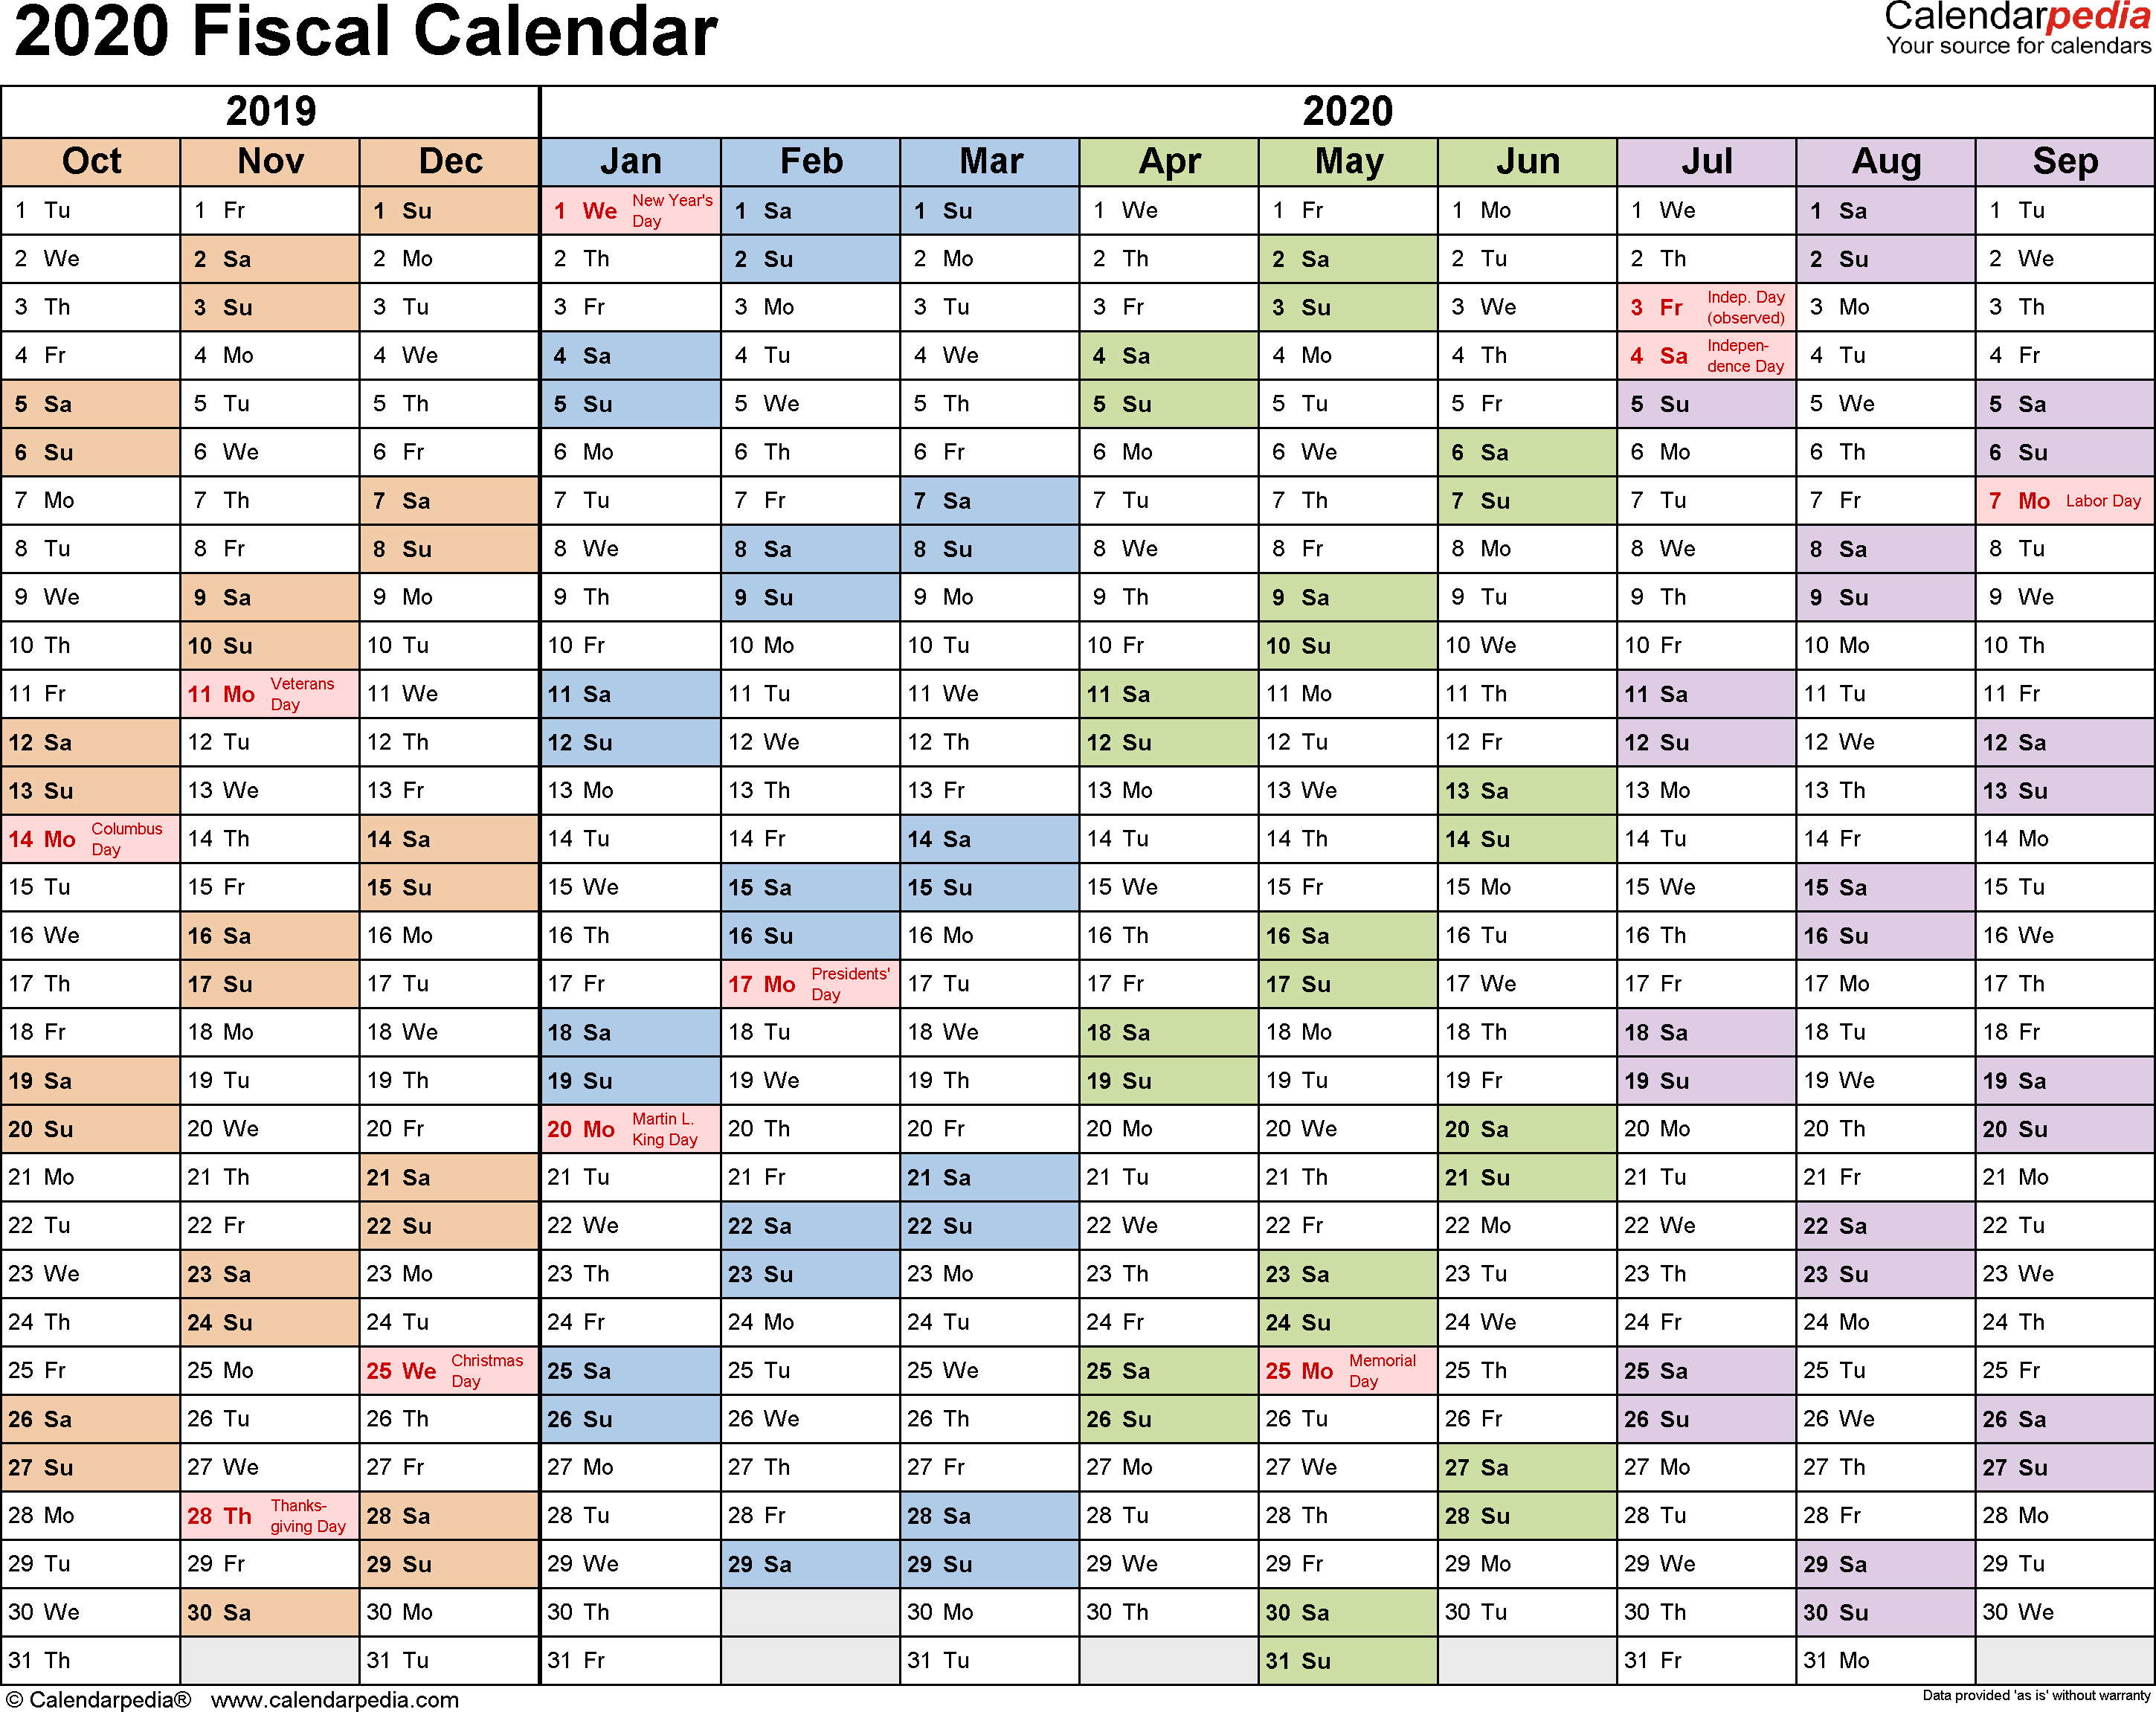 Fiscal Calendars 2020 - Free Printable Excel Templates with regard to Payroll Calendar 2020 In Excel